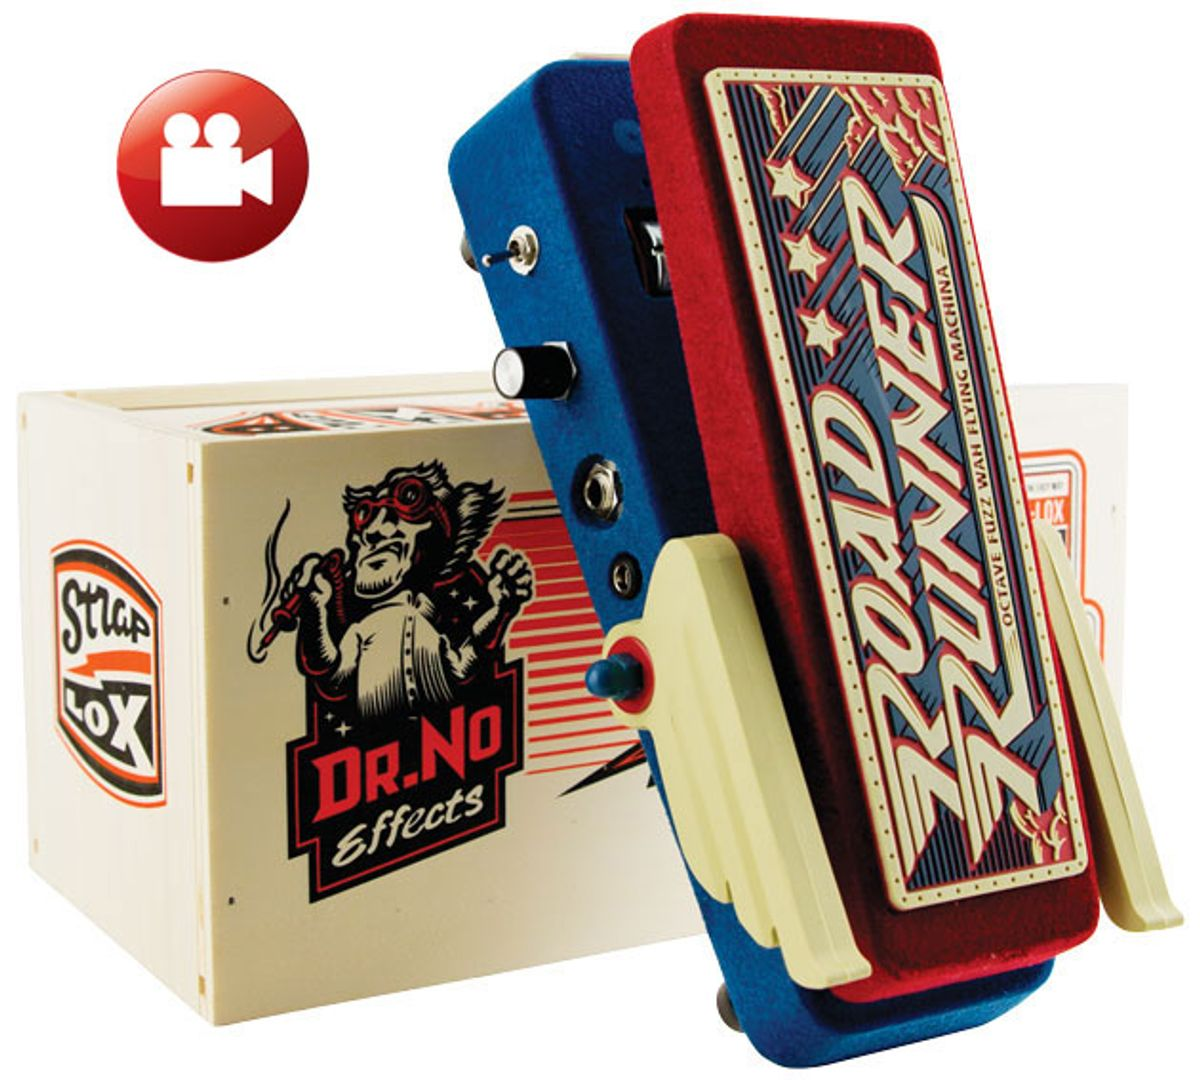 Dr. No Road Runner Octave Fuzz Wah Flying Machina Review